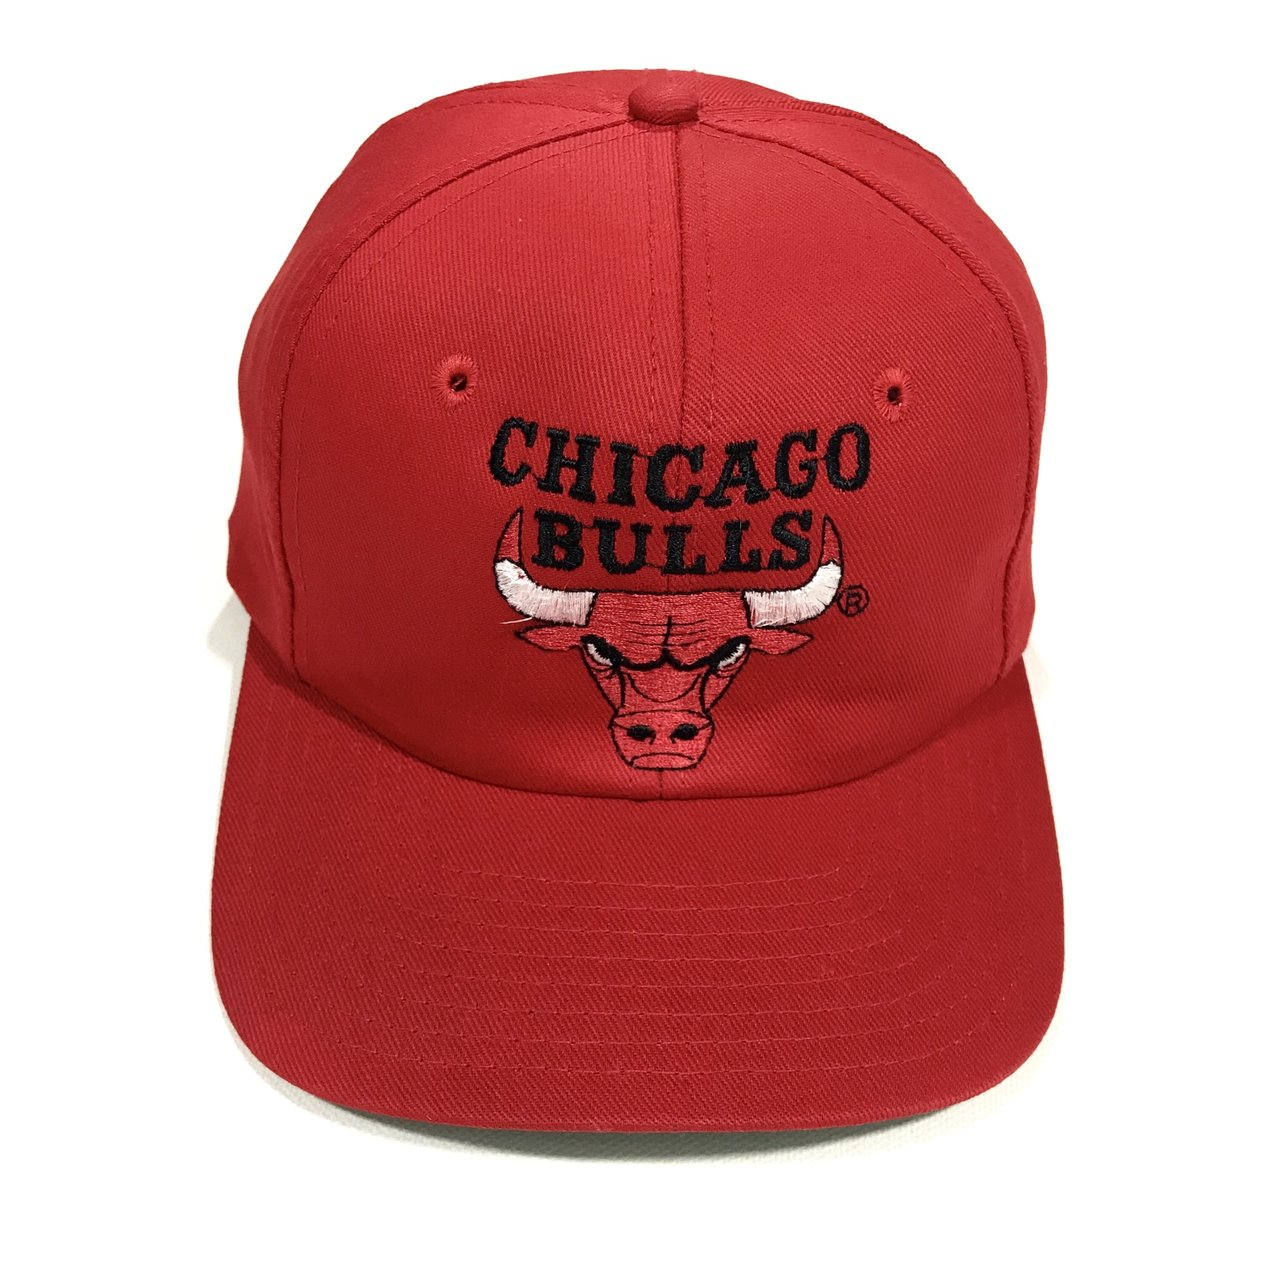 e46797bf5ab Vintage 90 s NBA Chicago Bulls snapback hat. Red color with - Depop